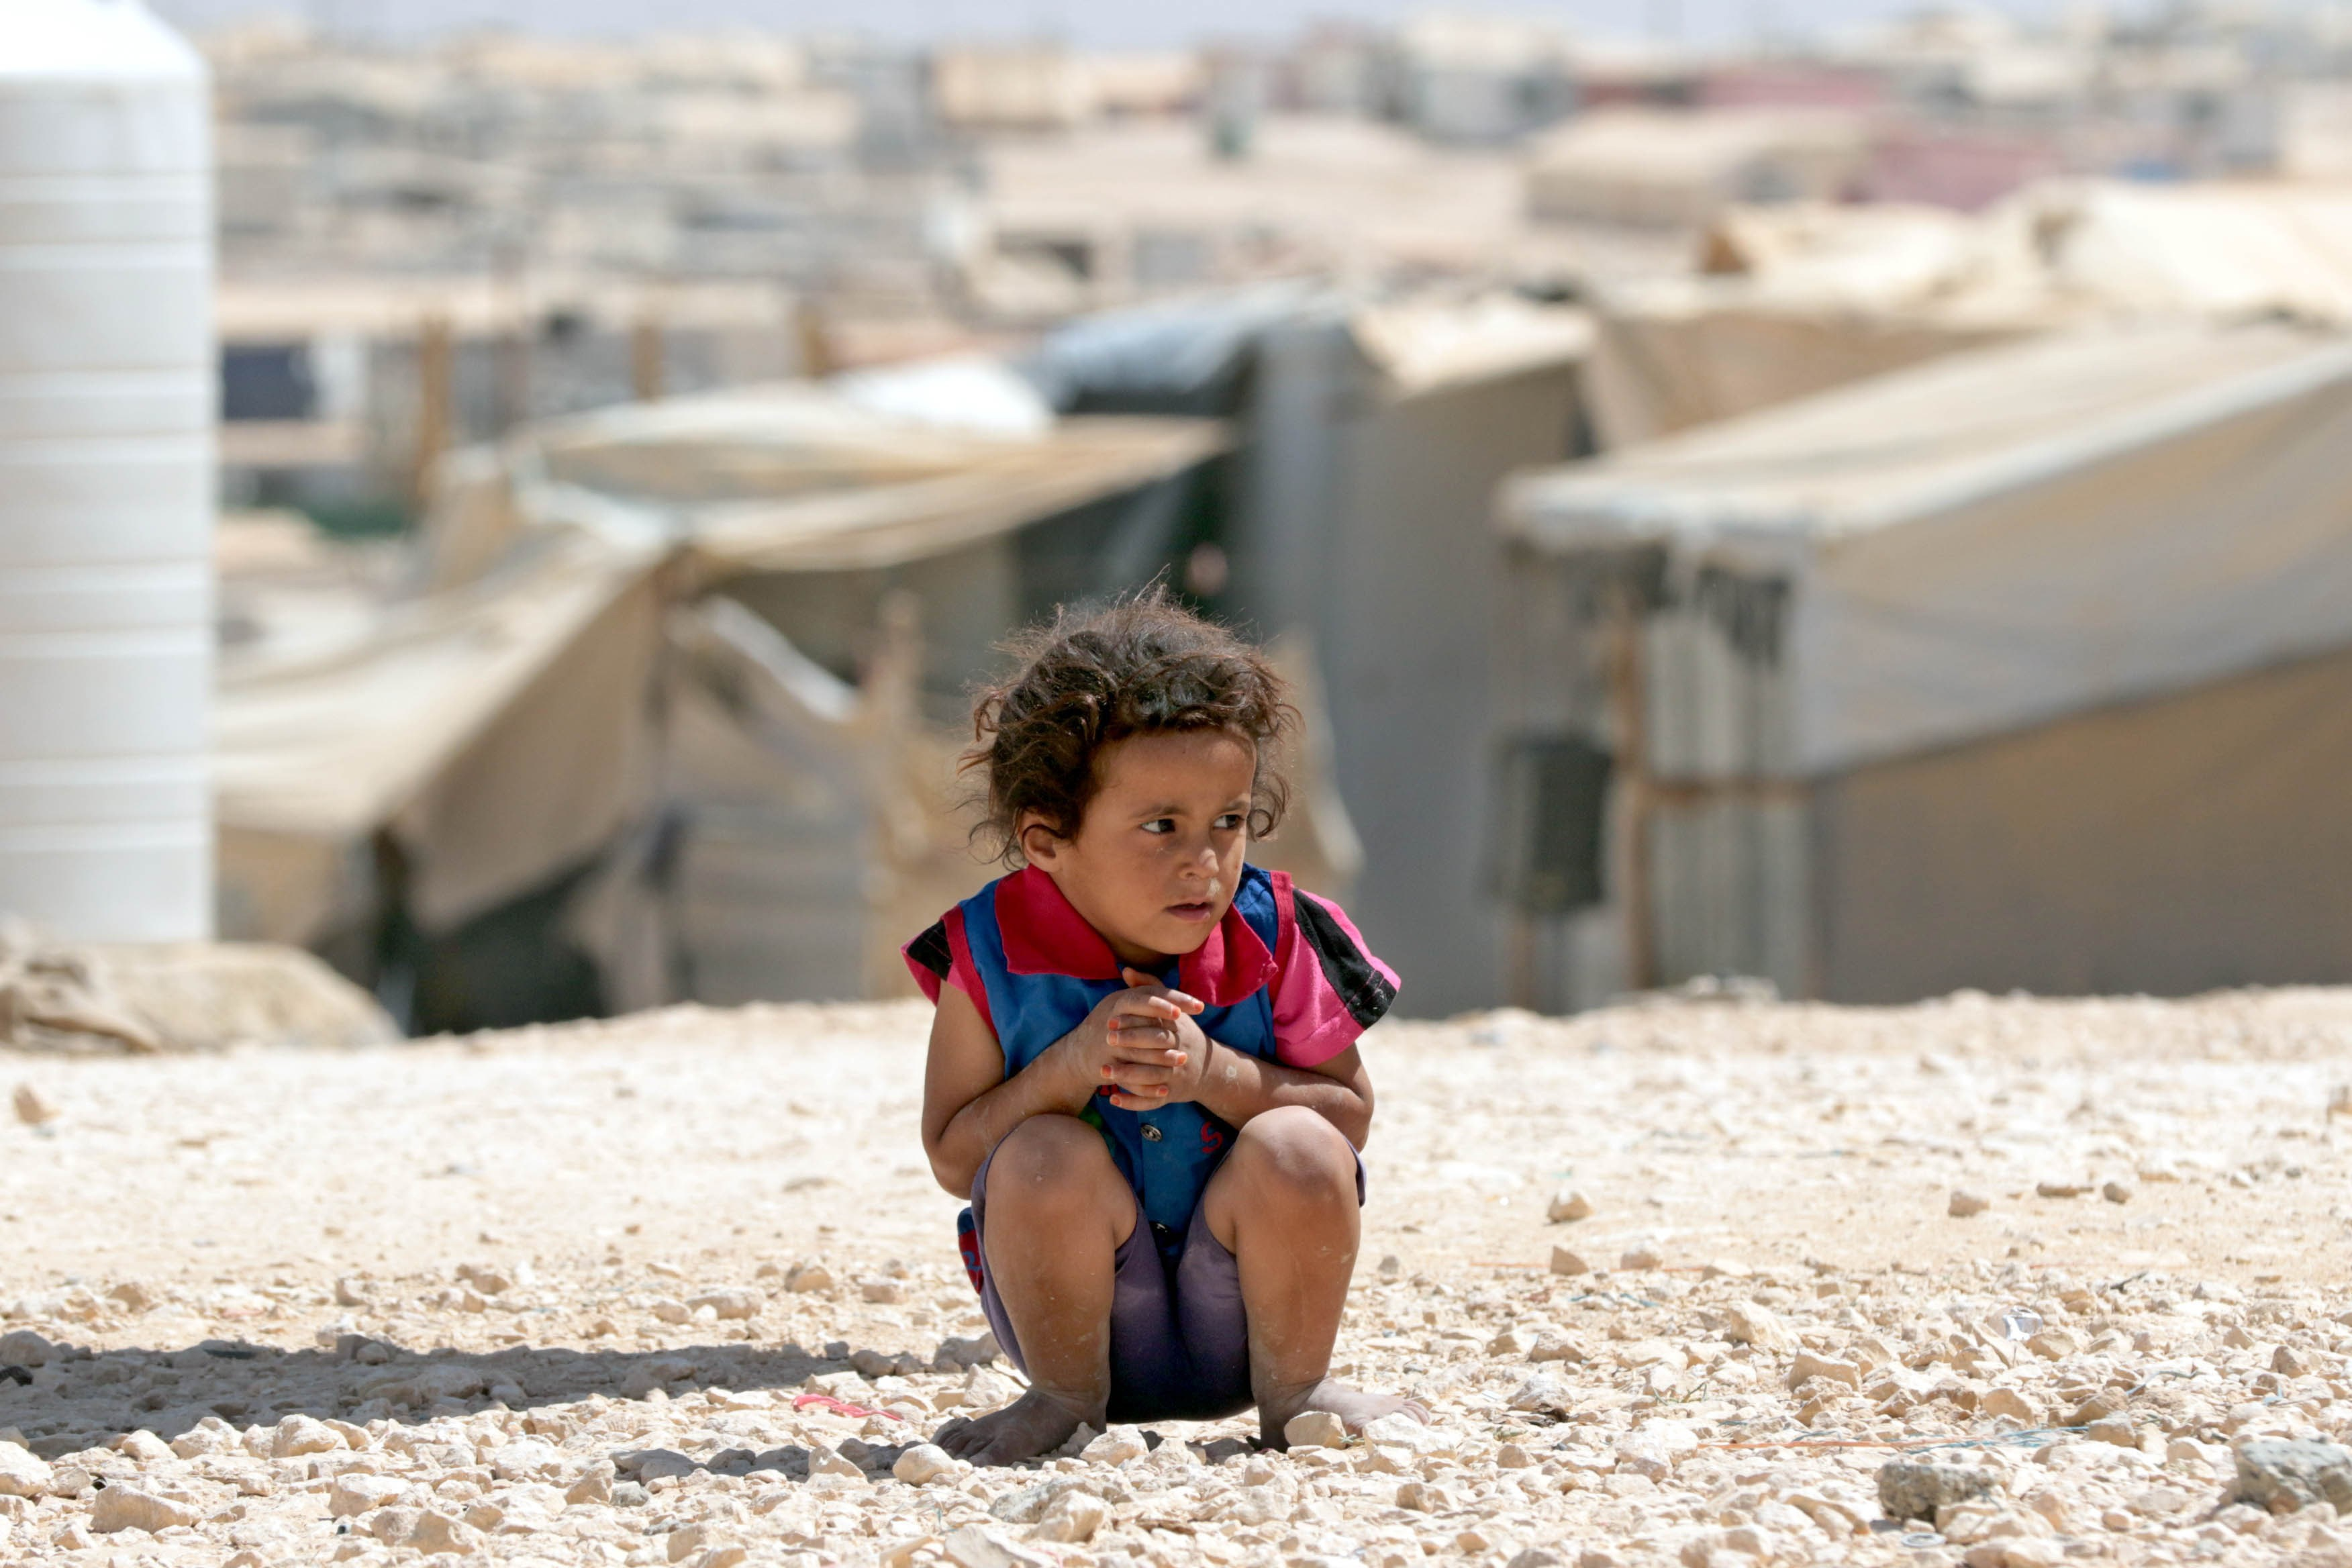 A young Syrian refugee looks on at the UN-run Zaatari camp, north east of the Jordanian capital Amman, on Sept. 19, 2015.